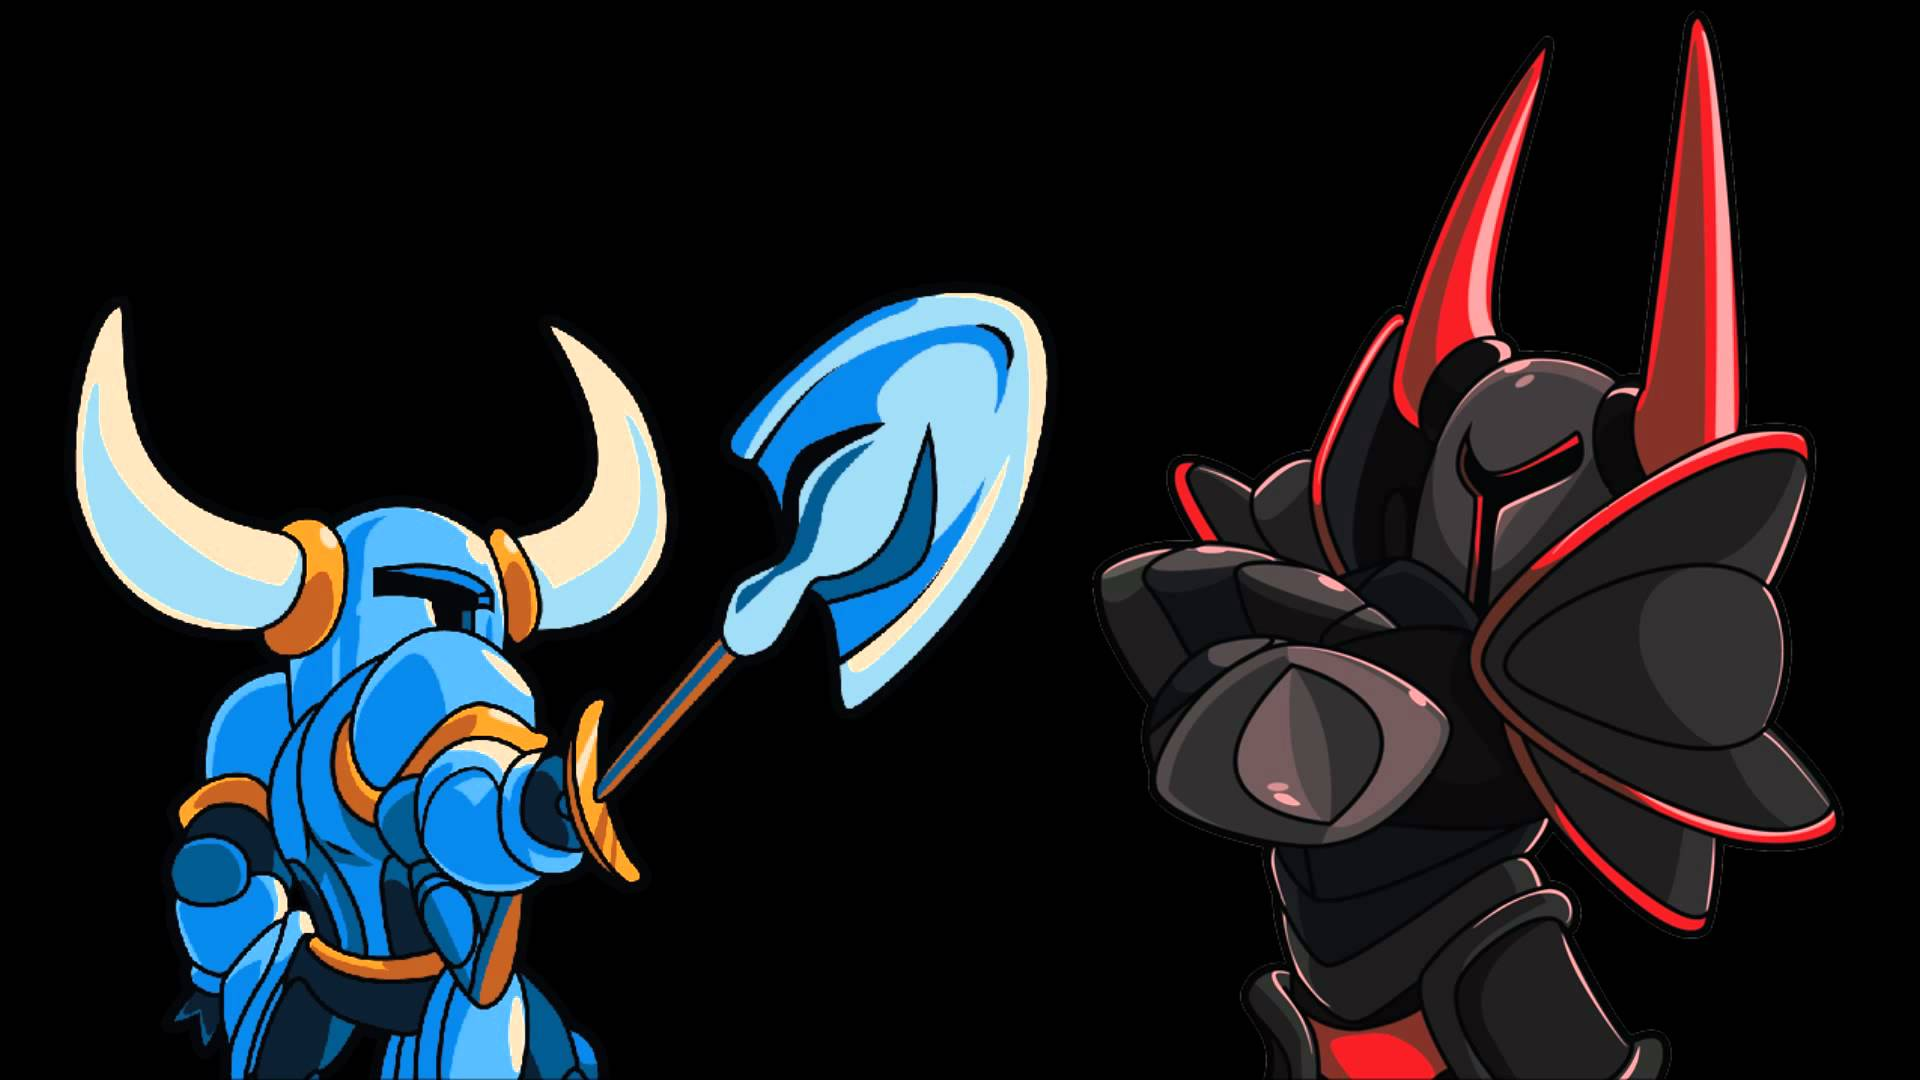 Shovel Knight Wallpapers Wallpaper Cave